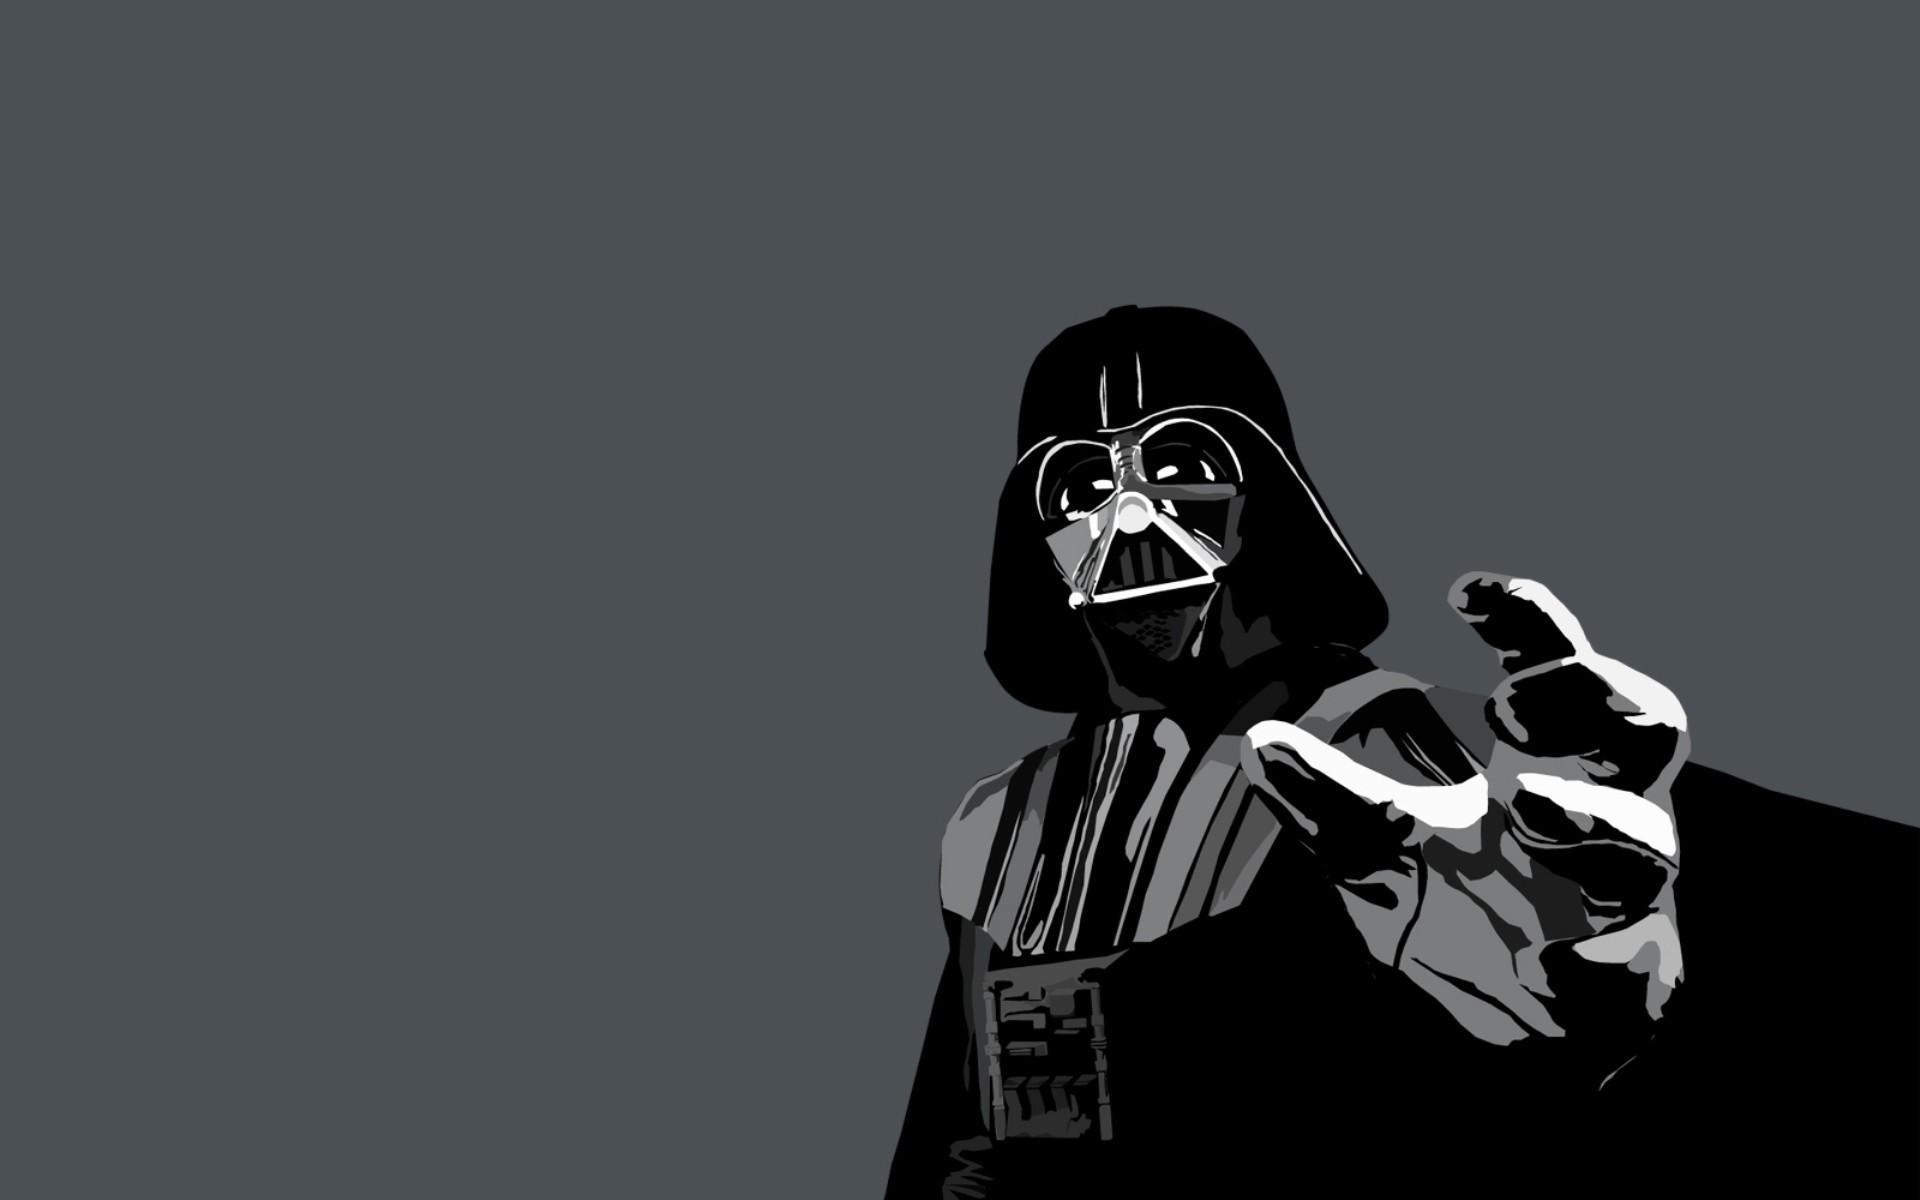 Star Wars Wallpaper 099